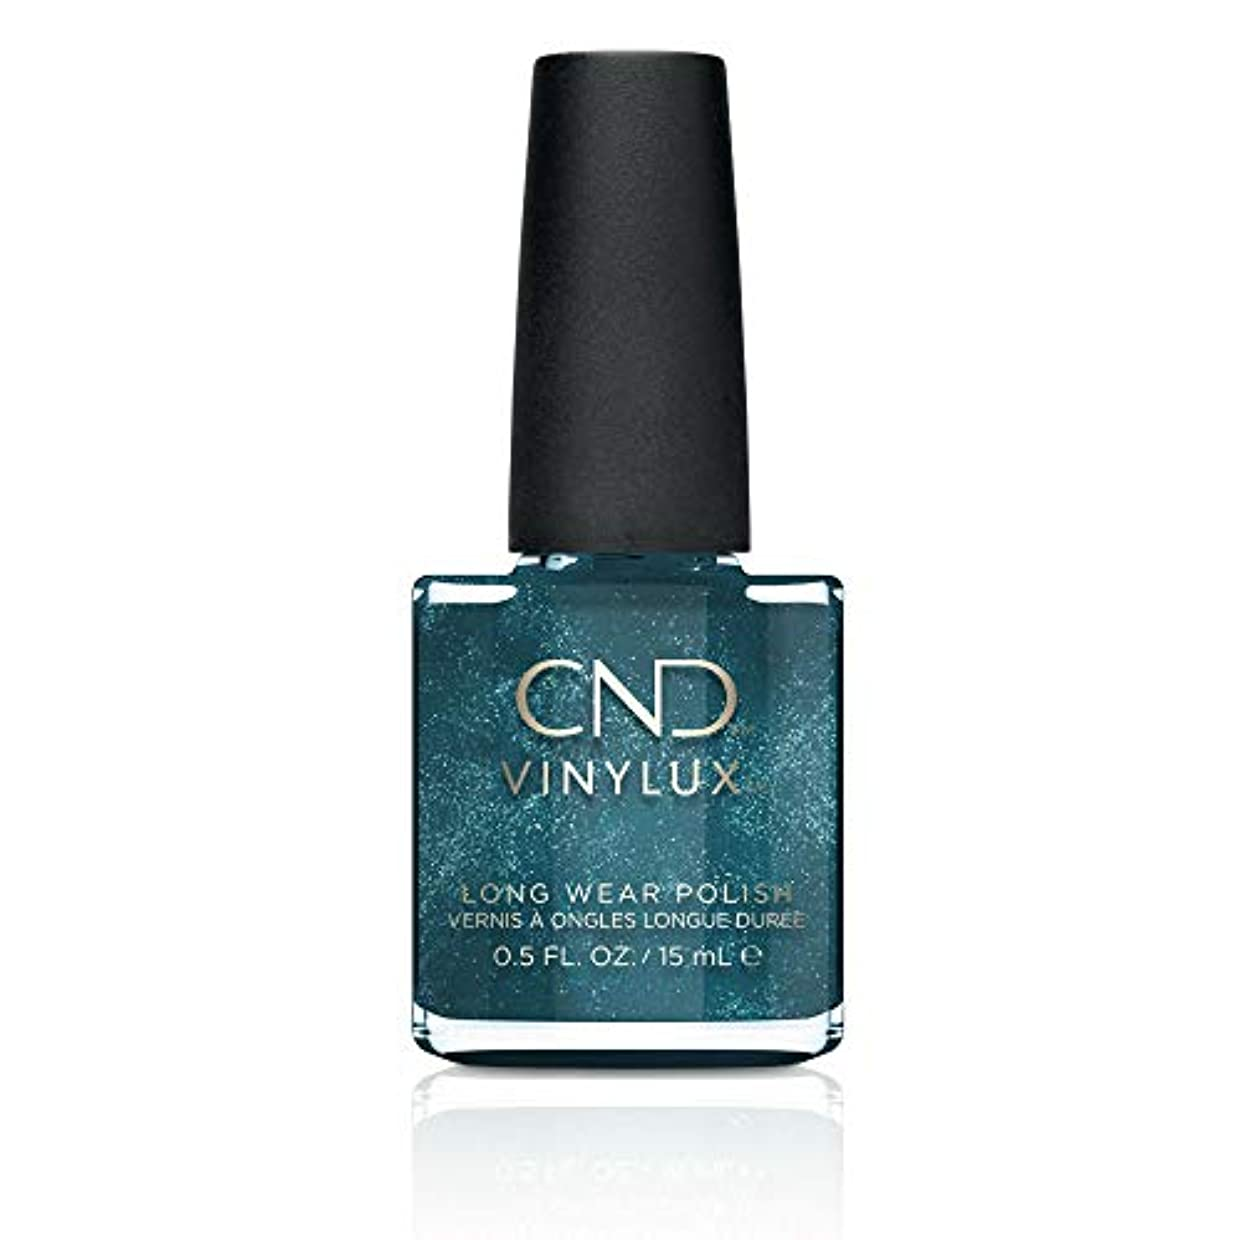 CND Vinylux Nail Polish - Fern Flannel - 0.5oz / 15ml